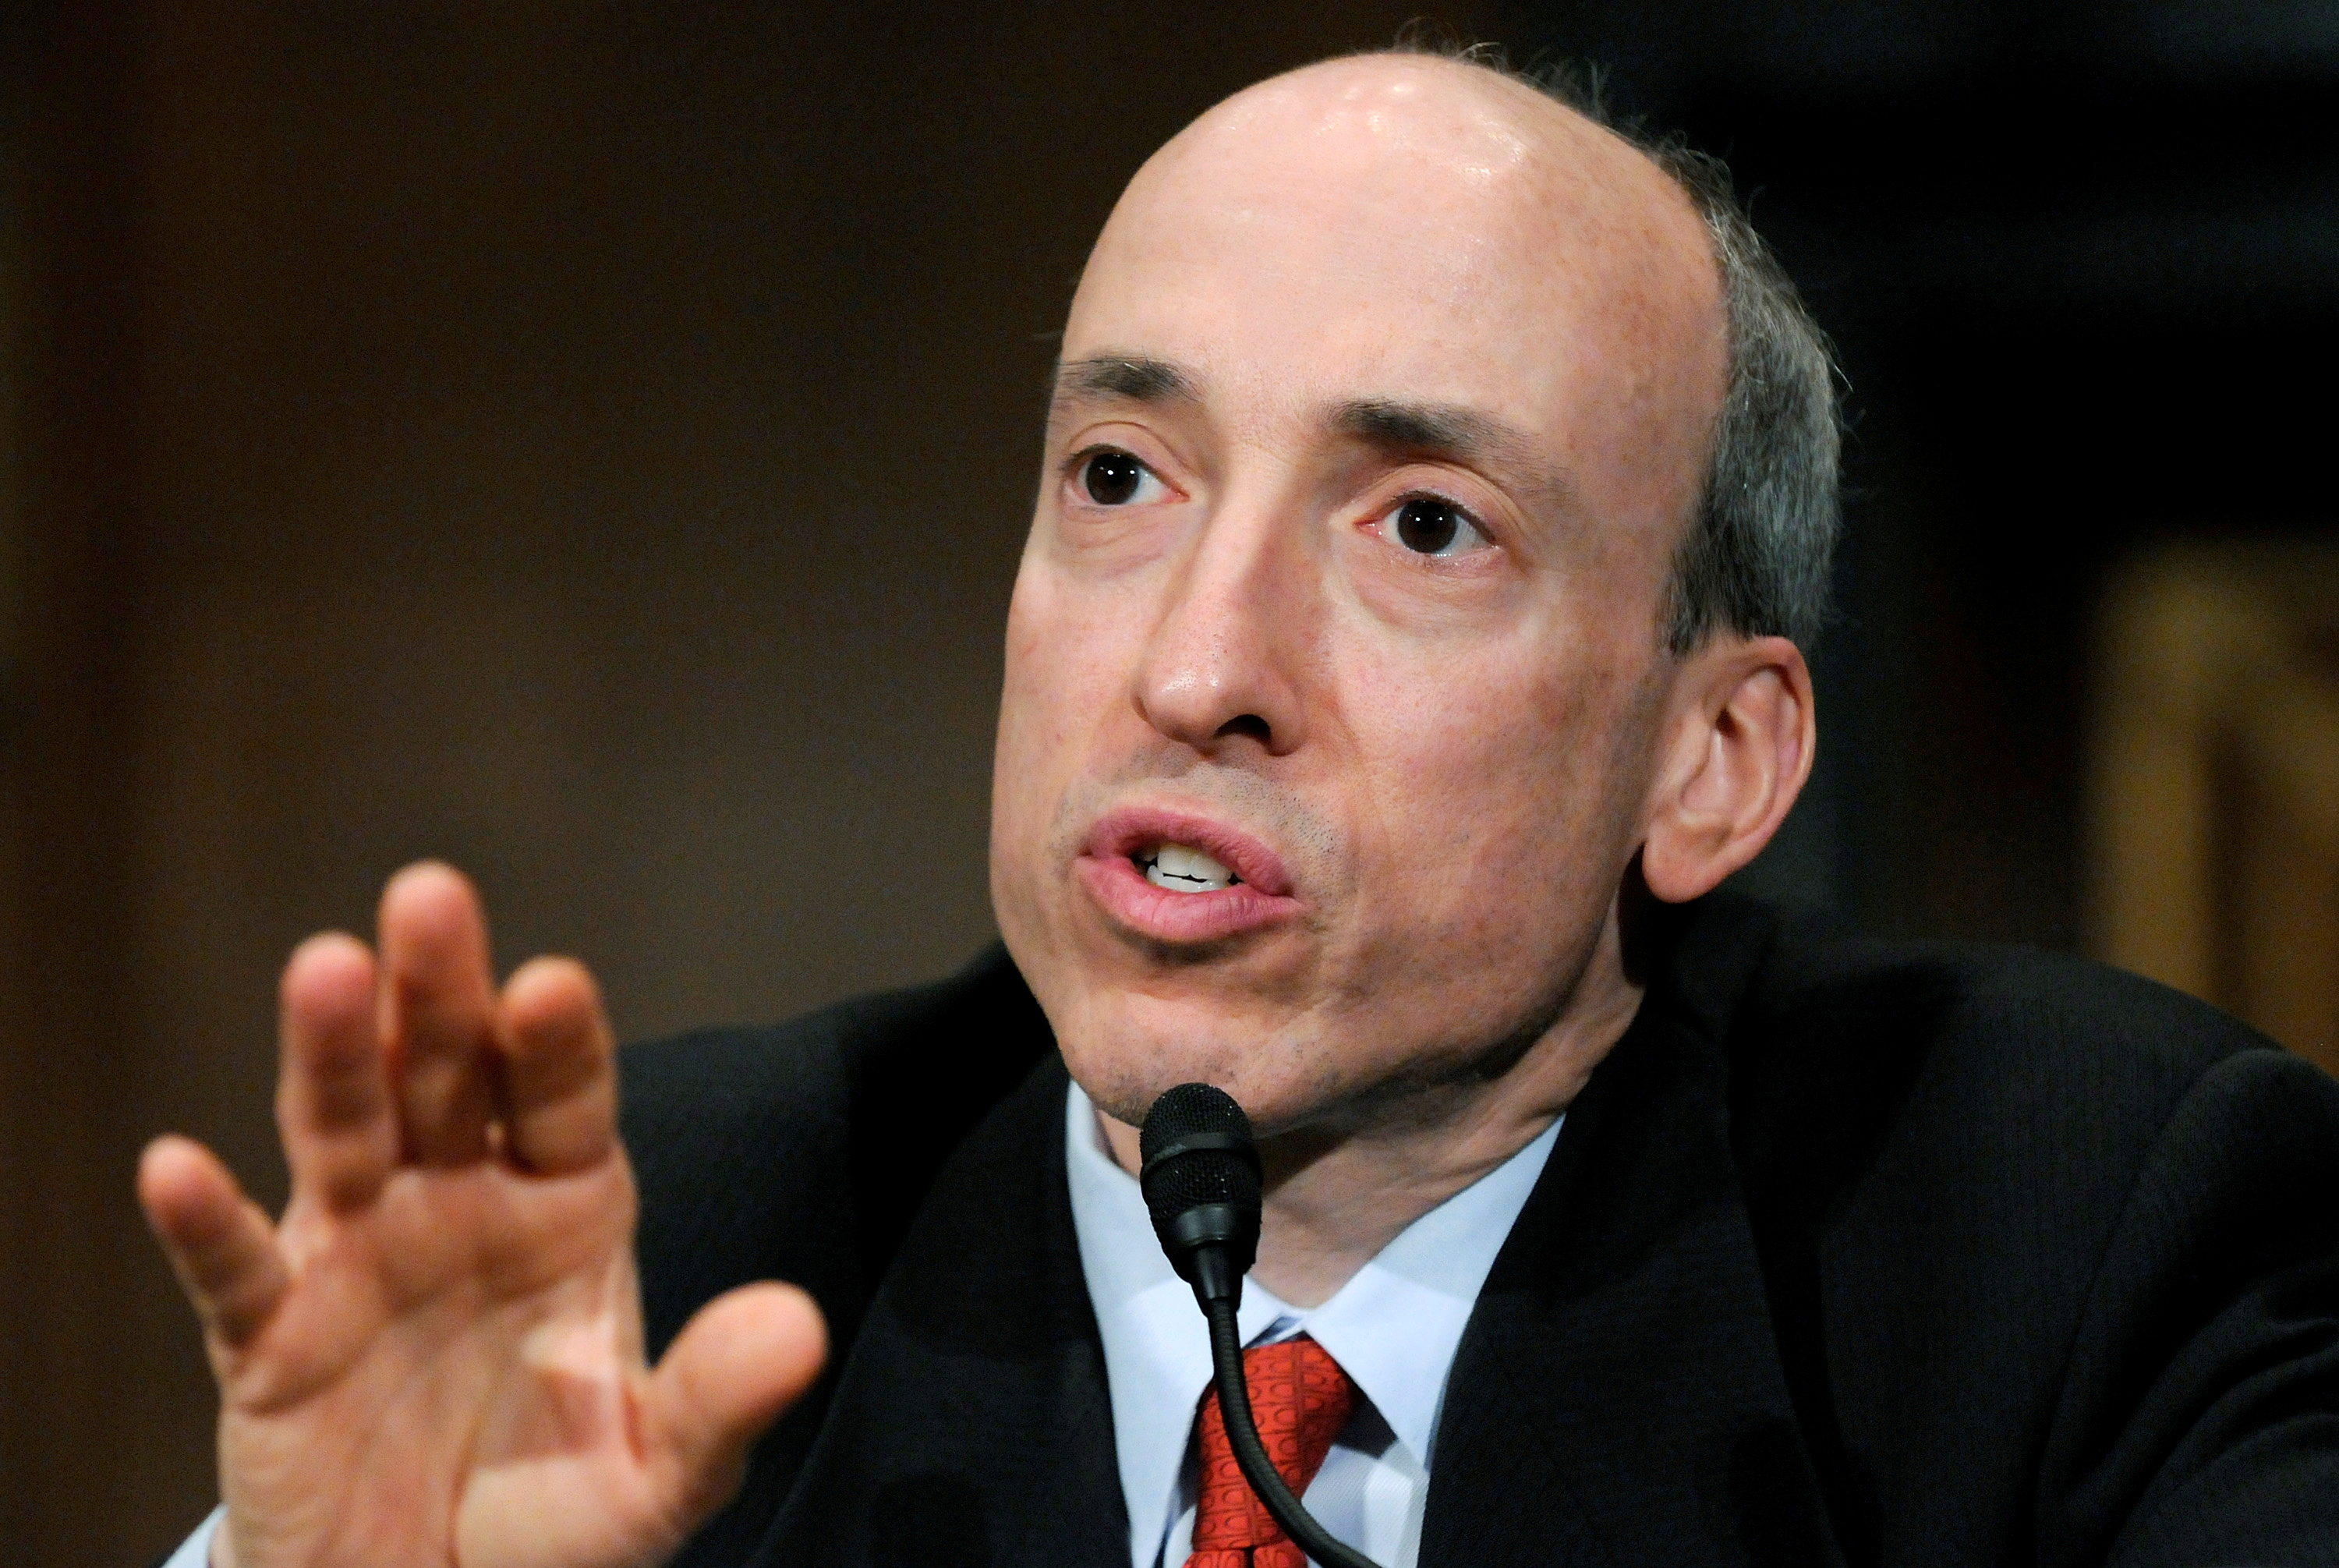 U.S. Securities and Exchange Commission Chair Gary Gensler, pictured when he was chairman of the Commodity Futures Trading Commission, at a U.S. Senate Banking Committee hearing on systemic risk and market oversight on Capitol Hill in Washington May 22, 2012.  REUTERS/Jonathan Ernst/File Photo